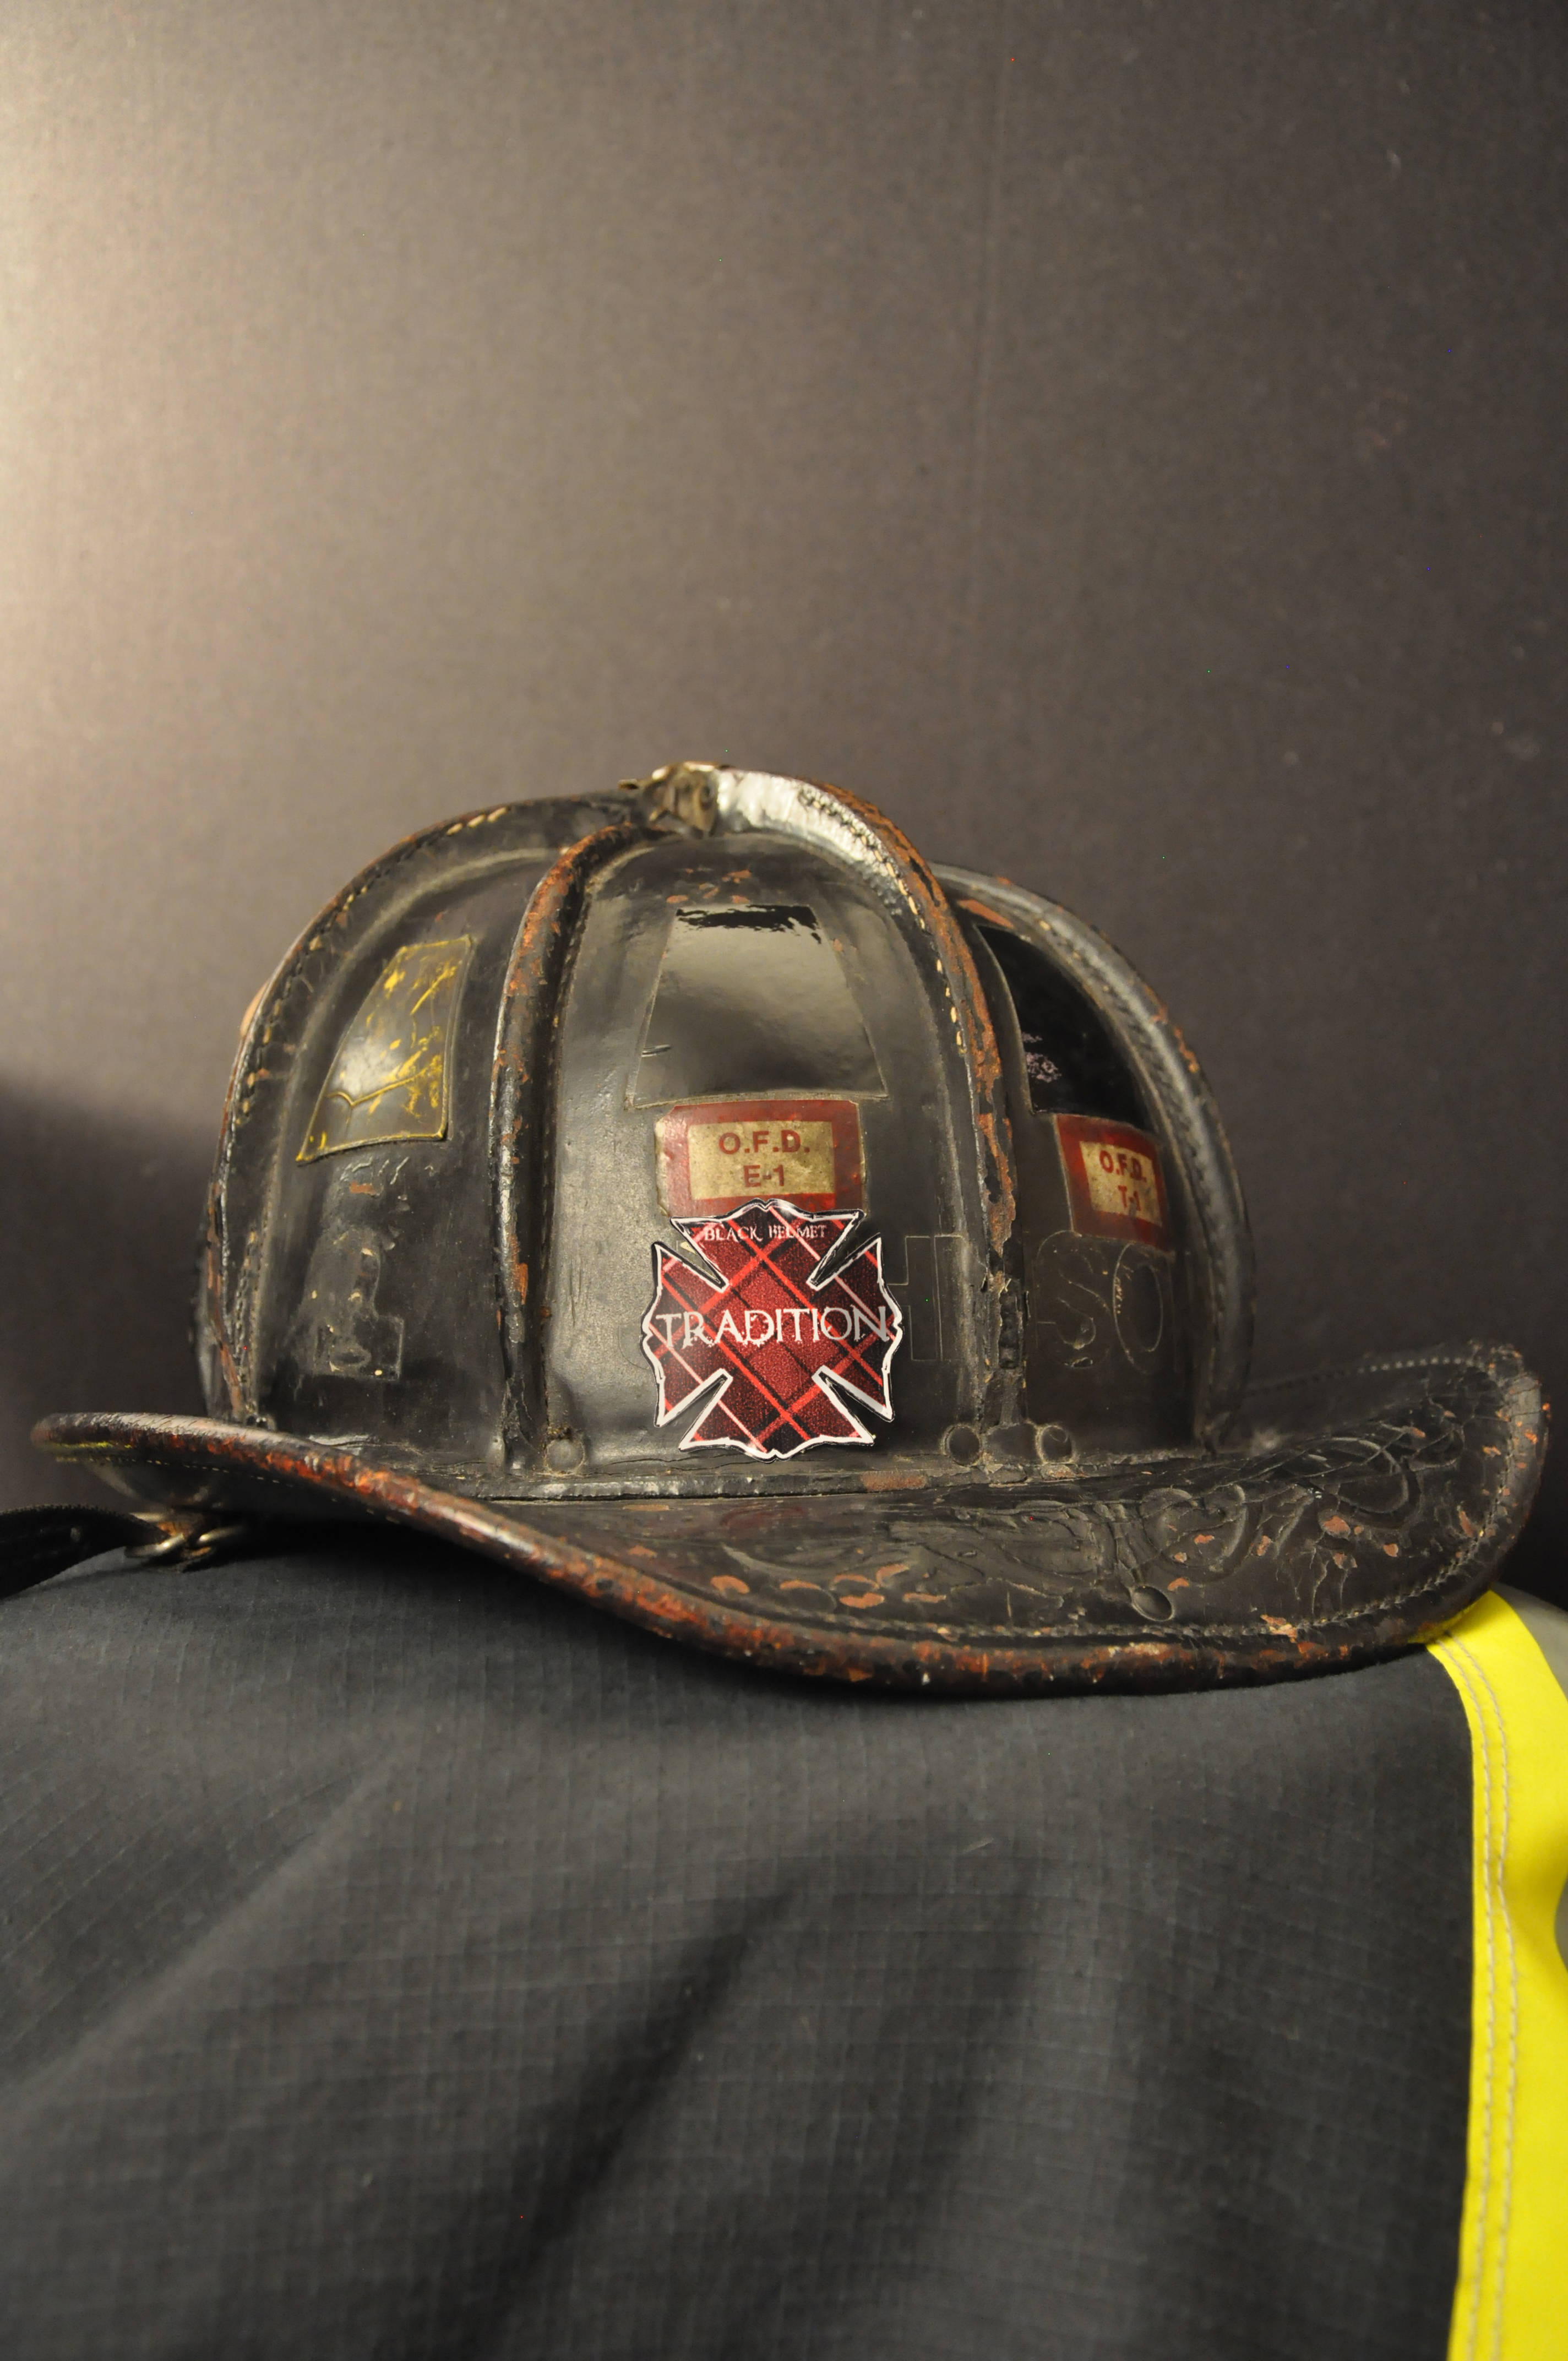 Tradition Red Plaid Fire Helmet Decal Black Helmet Firefighter - Fire helmet decals